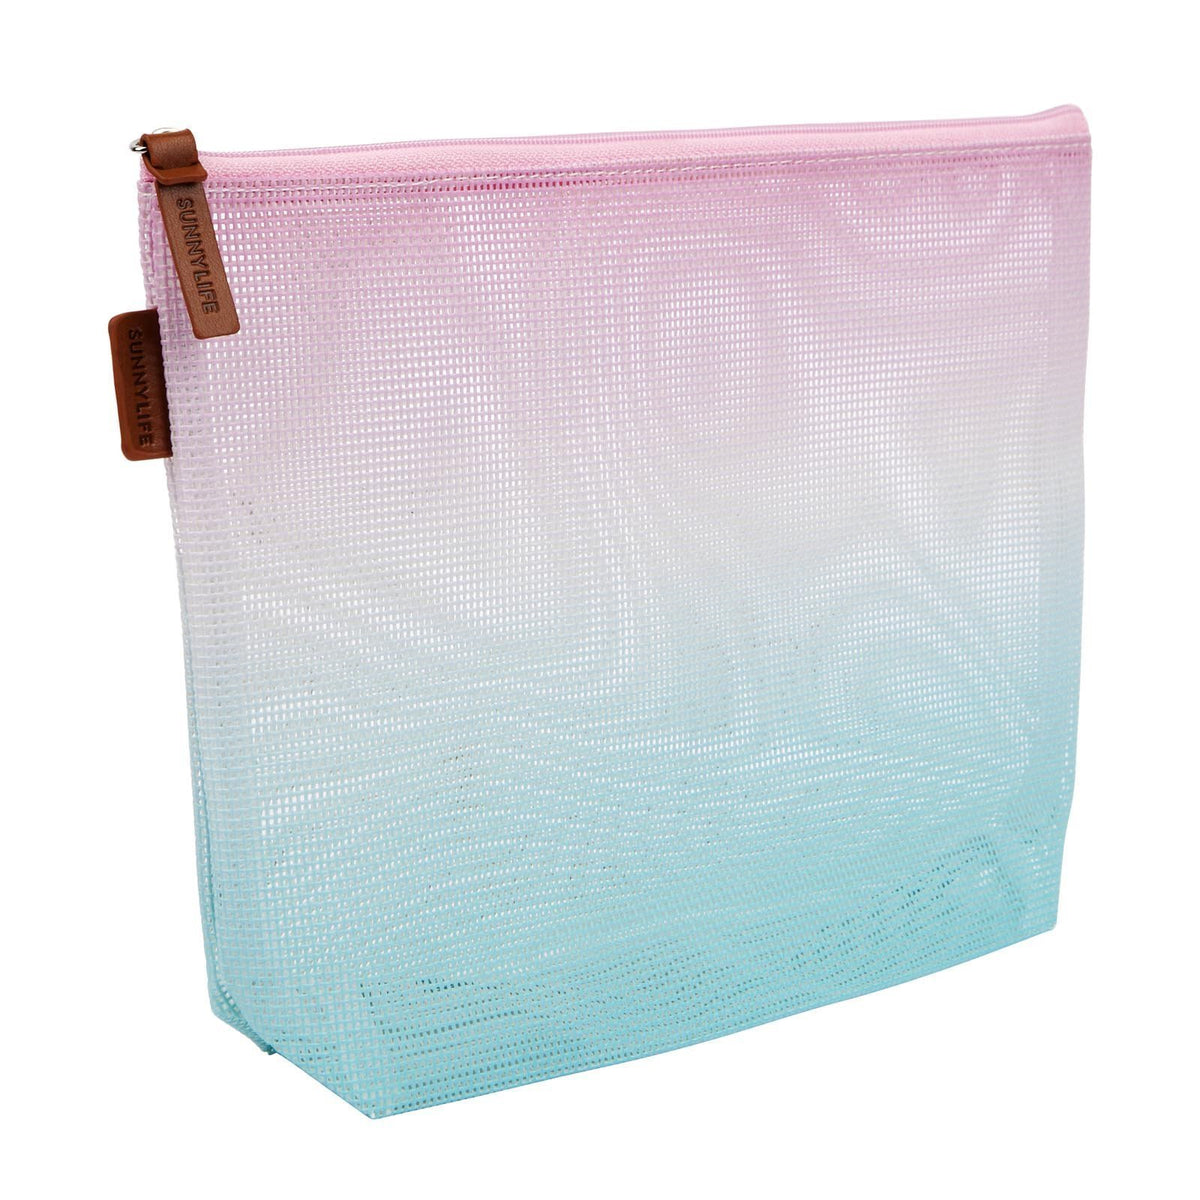 Sunnylife | Mesh Cosmetic Bag | Malibu